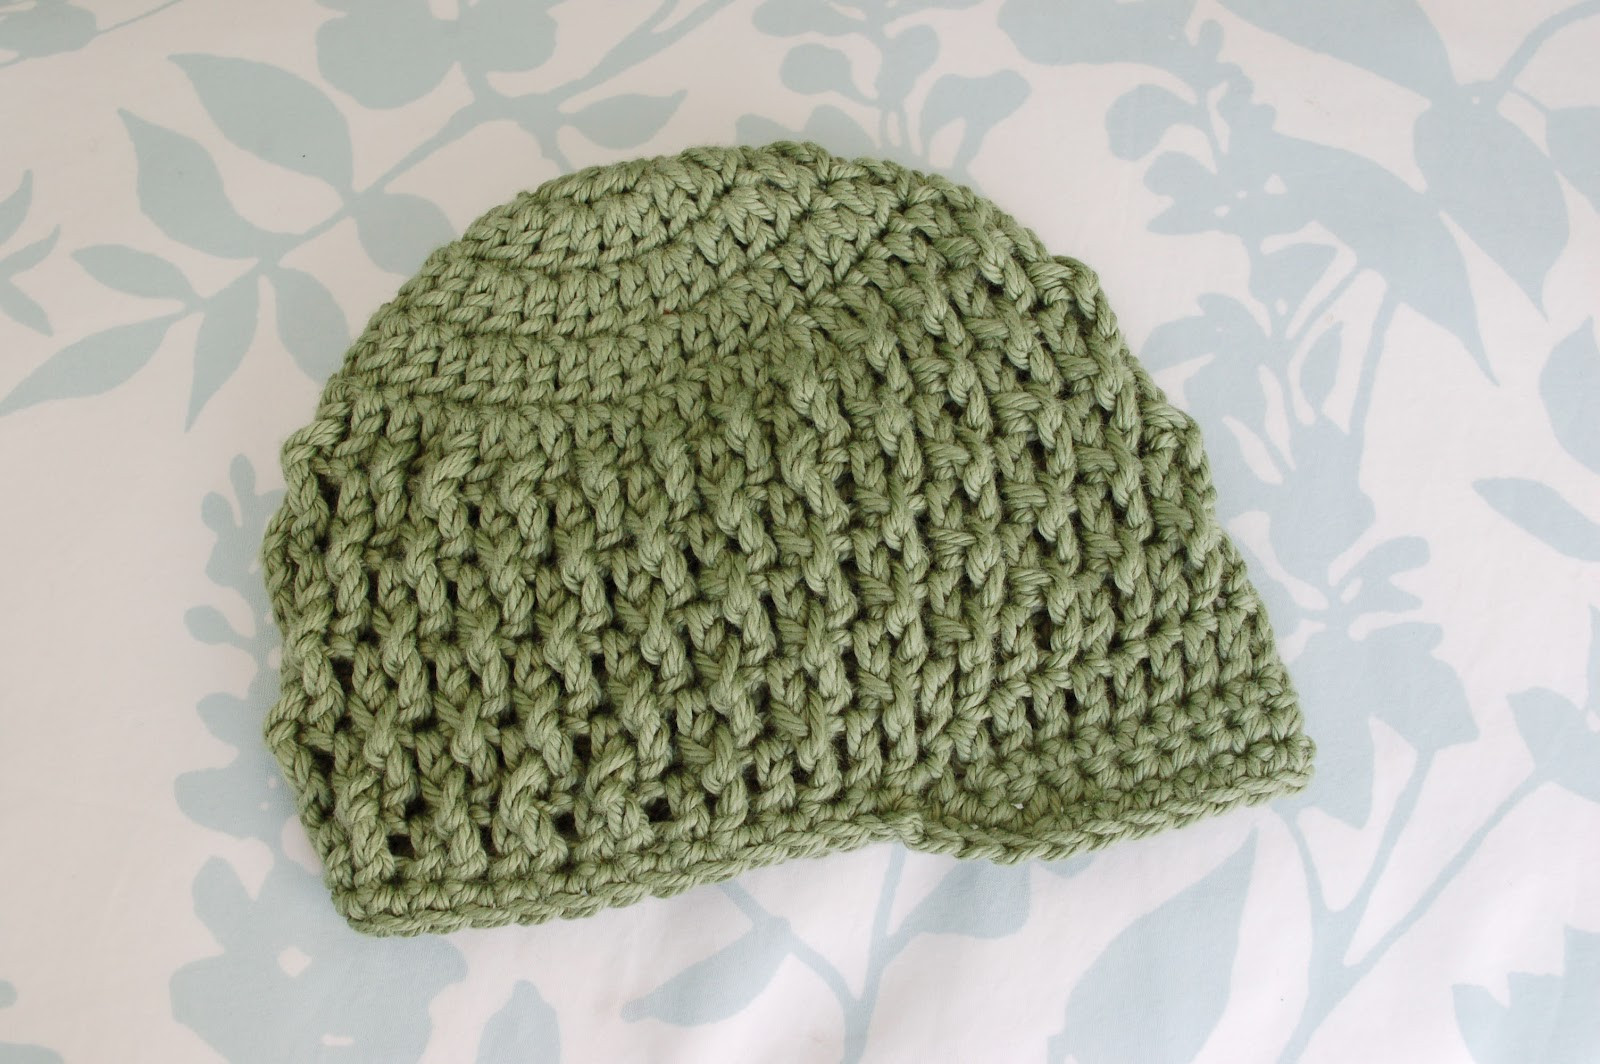 Crochet Baby Cap Lovely Alli Crafts Free Pattern Deeply Textured Hat 3 Months Of Wonderful 43 Images Crochet Baby Cap